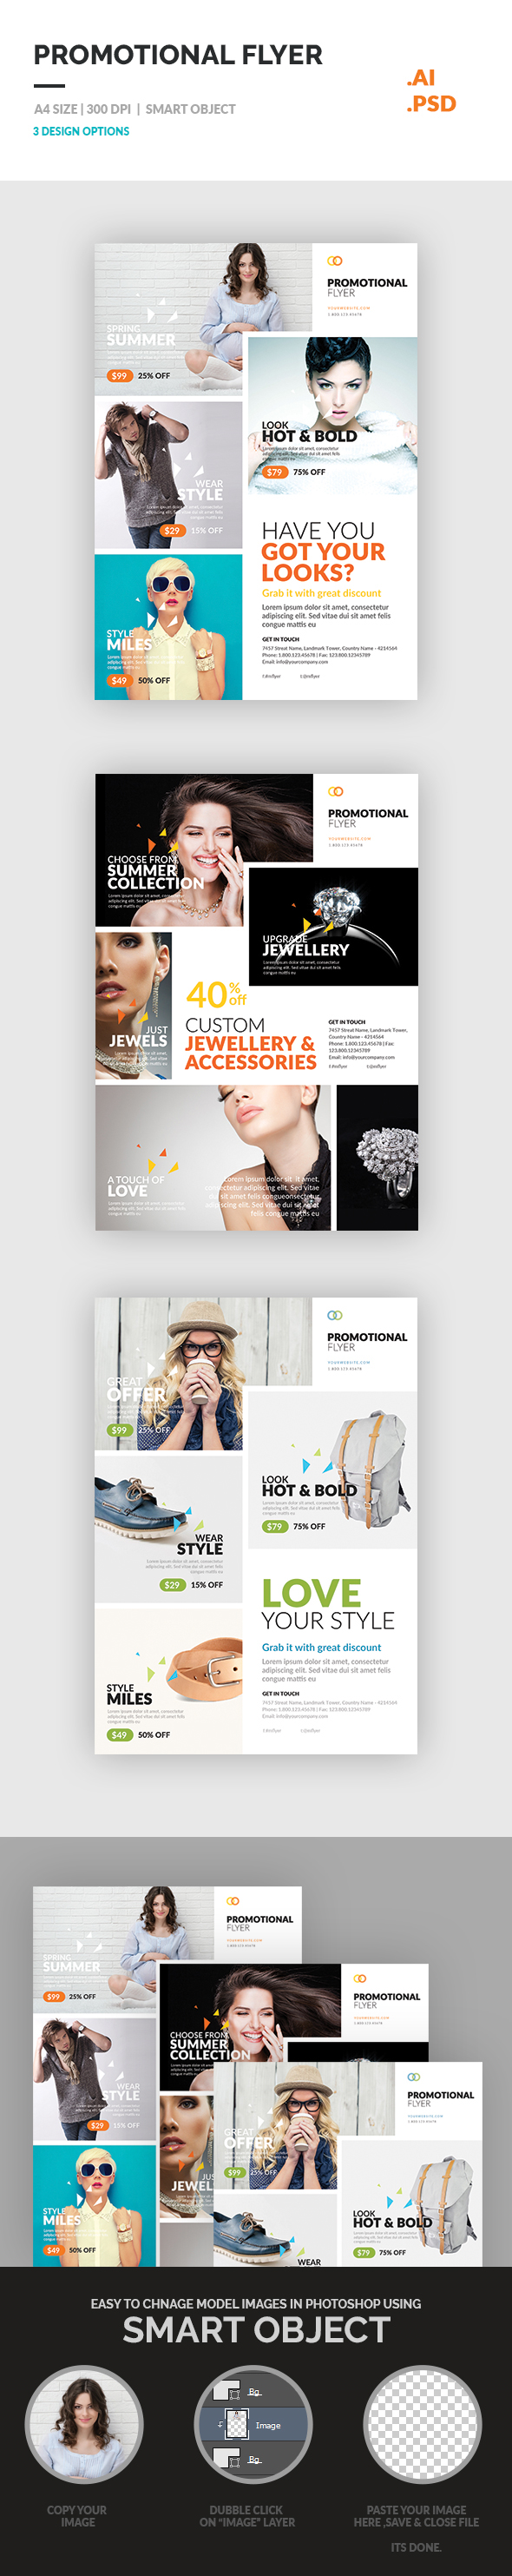 promotional flyer on behance set of promotional flyer template included 3 flyer design which can be use for any business like product promotion flyer jewellery fashion cloth